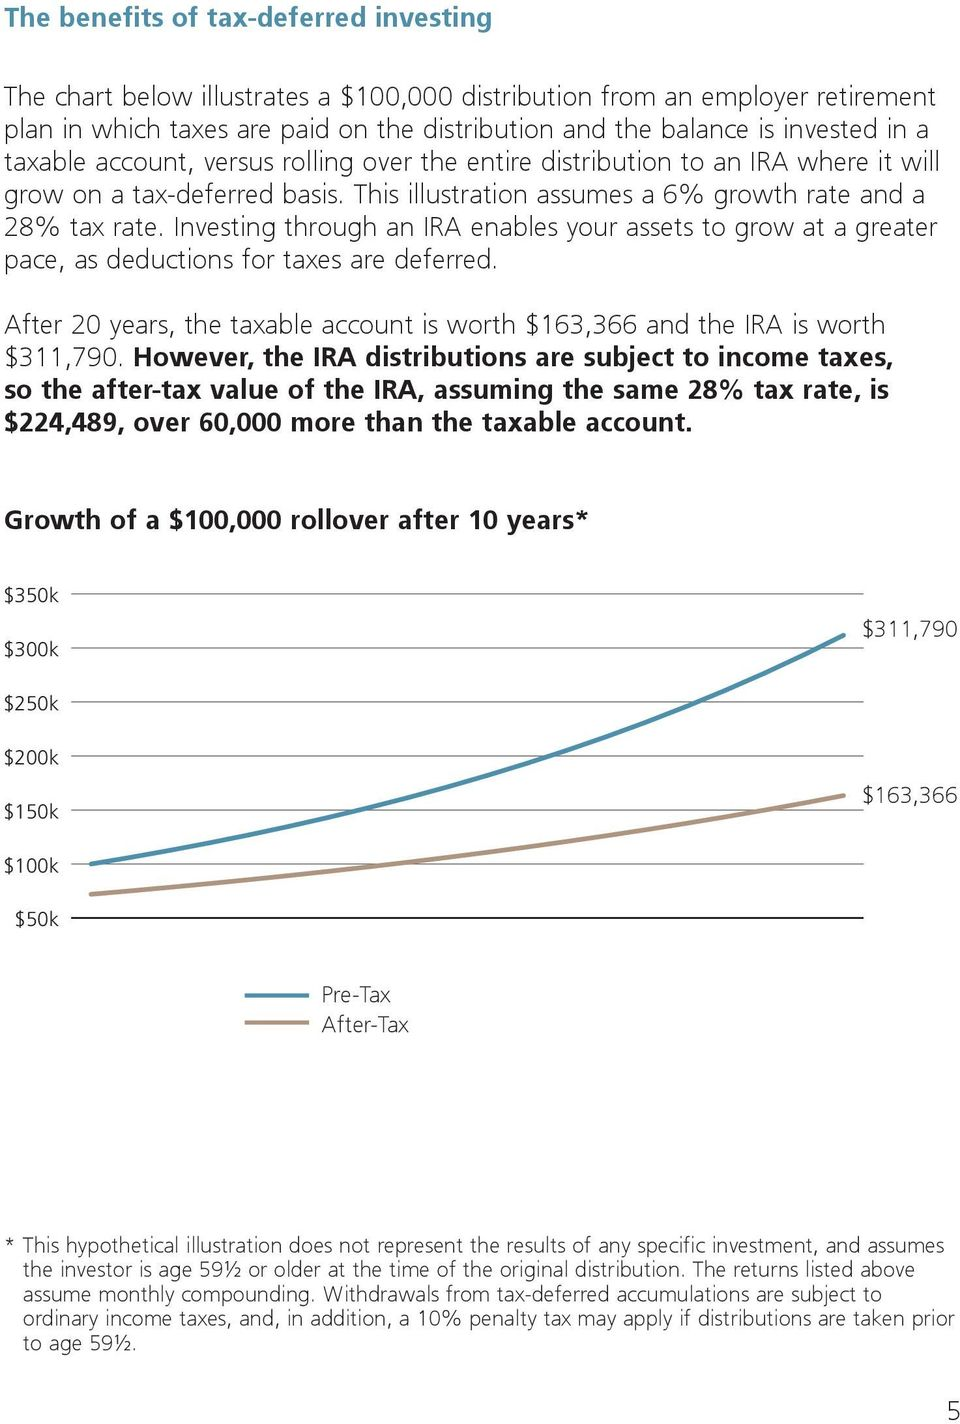 Investing through an IRA enables your assets to grow at a greater pace, as deductions for taxes are deferred. After 20 years, the taxable account is worth $163,366 and the IRA is worth $311,790.